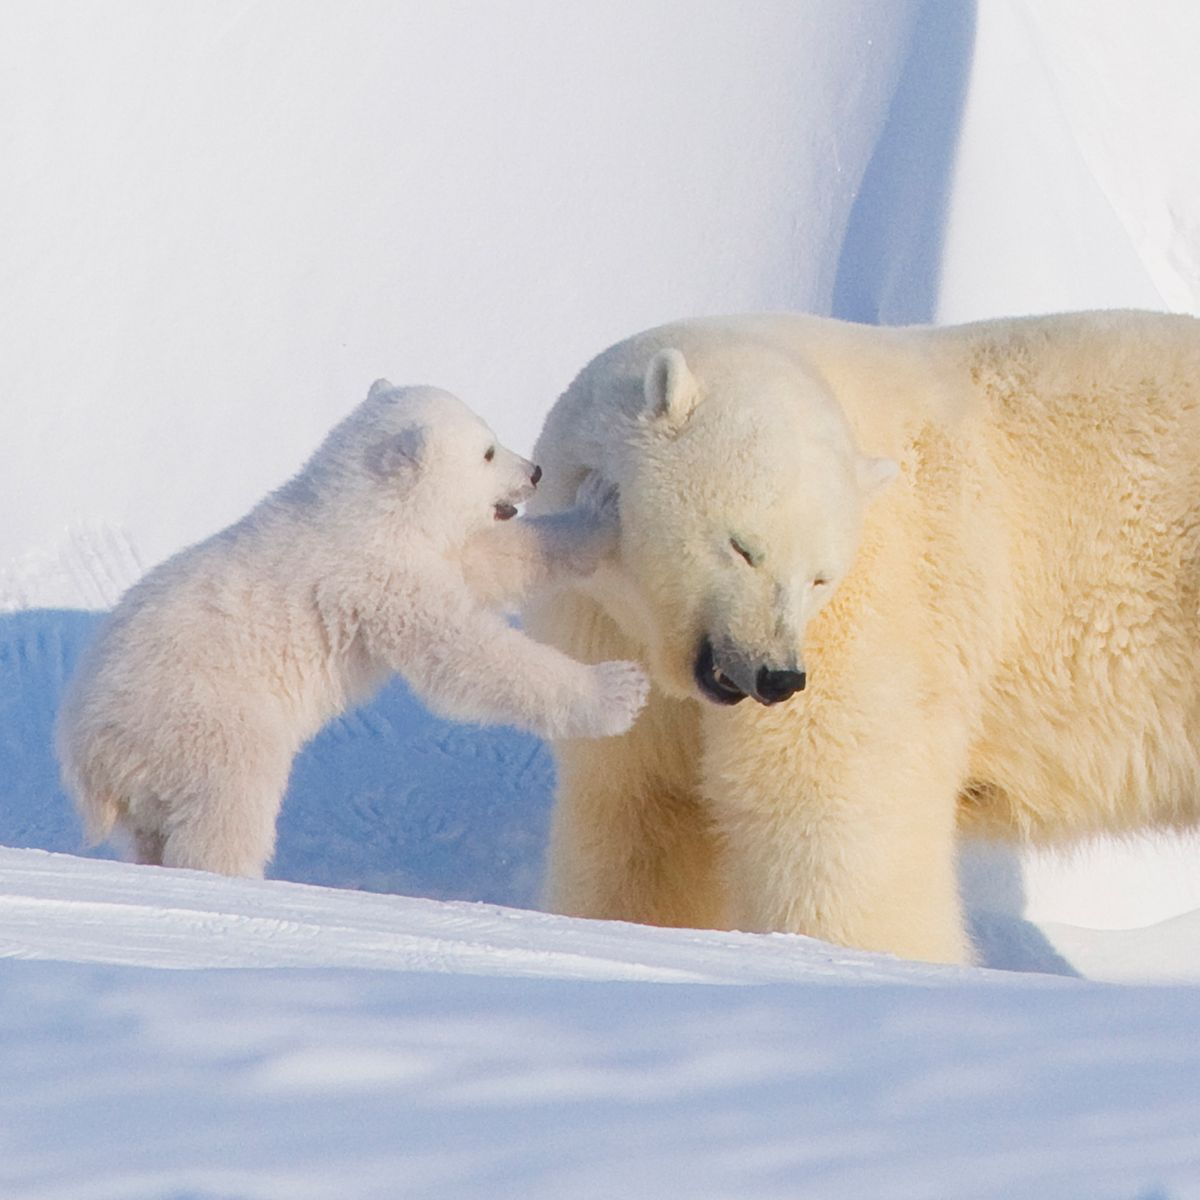 Climate Crisis May Wipe Out Polar Bears by 2100, Study Says